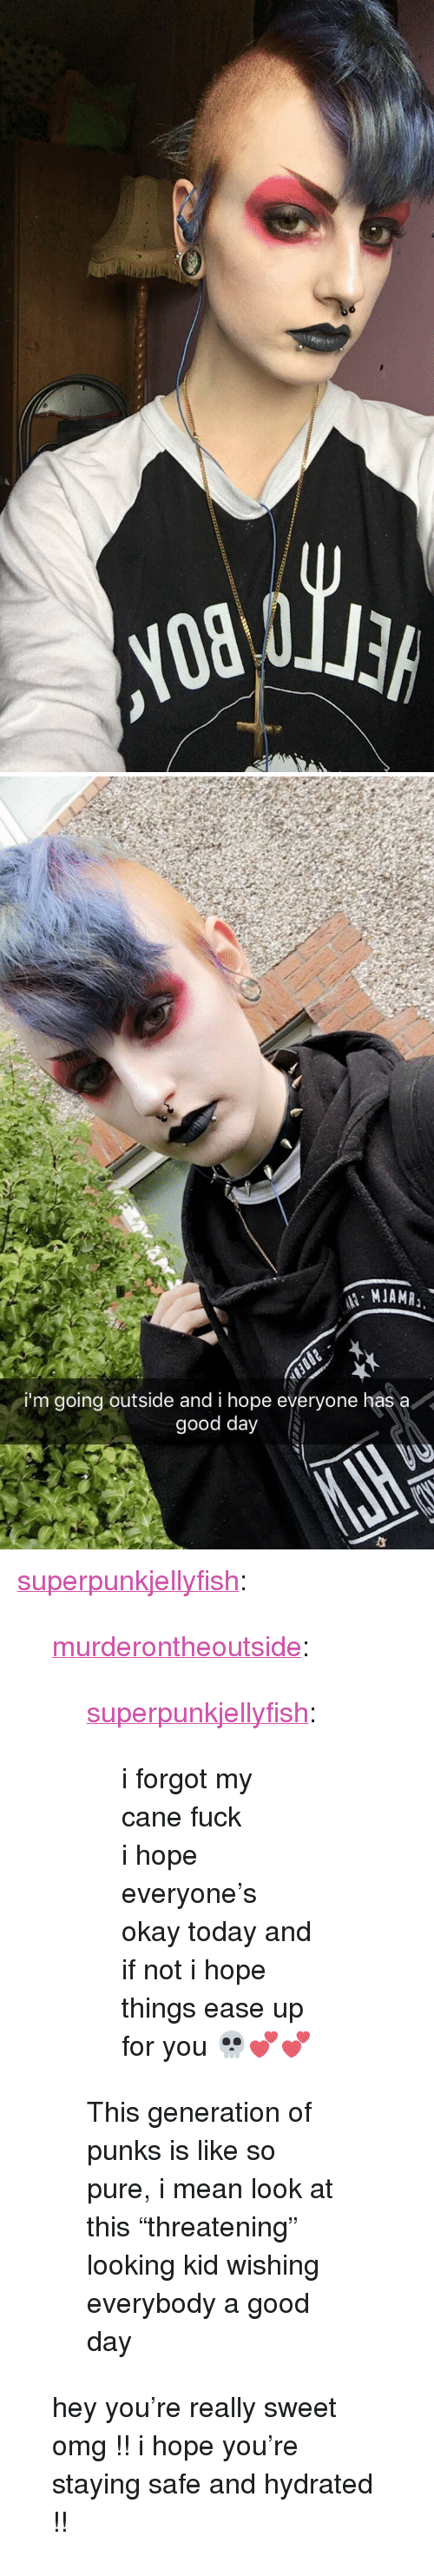 "Omg, Tumblr, and Blog: i'm going outside and i hope everyone has a  good day <p><a href=""http://superpunkjellyfish.tumblr.com/post/171805056905/murderontheoutside-superpunkjellyfish-i"" class=""tumblr_blog"">superpunkjellyfish</a>:</p>  <blockquote><p><a href=""https://murderontheoutside.tumblr.com/post/171804858856/superpunkjellyfish-i-forgot-my-cane-fuck-i"" class=""tumblr_blog"">murderontheoutside</a>:</p>  <blockquote><p><a href=""http://superpunkjellyfish.tumblr.com/post/164828007080/i-forgot-my-cane-fuck-i-hope-everyones-okay"" class=""tumblr_blog"">superpunkjellyfish</a>:</p>  <blockquote><p>i forgot my cane fuck<br/> i hope everyone's okay today and if not i hope things ease up for you 💀💕💕</p></blockquote>  <p>This generation of punks is like so pure, i mean look at this ""threatening"" looking kid wishing everybody a good day</p></blockquote>  <p>hey you're really sweet omg !! i hope you're staying safe and hydrated !! </p></blockquote>"